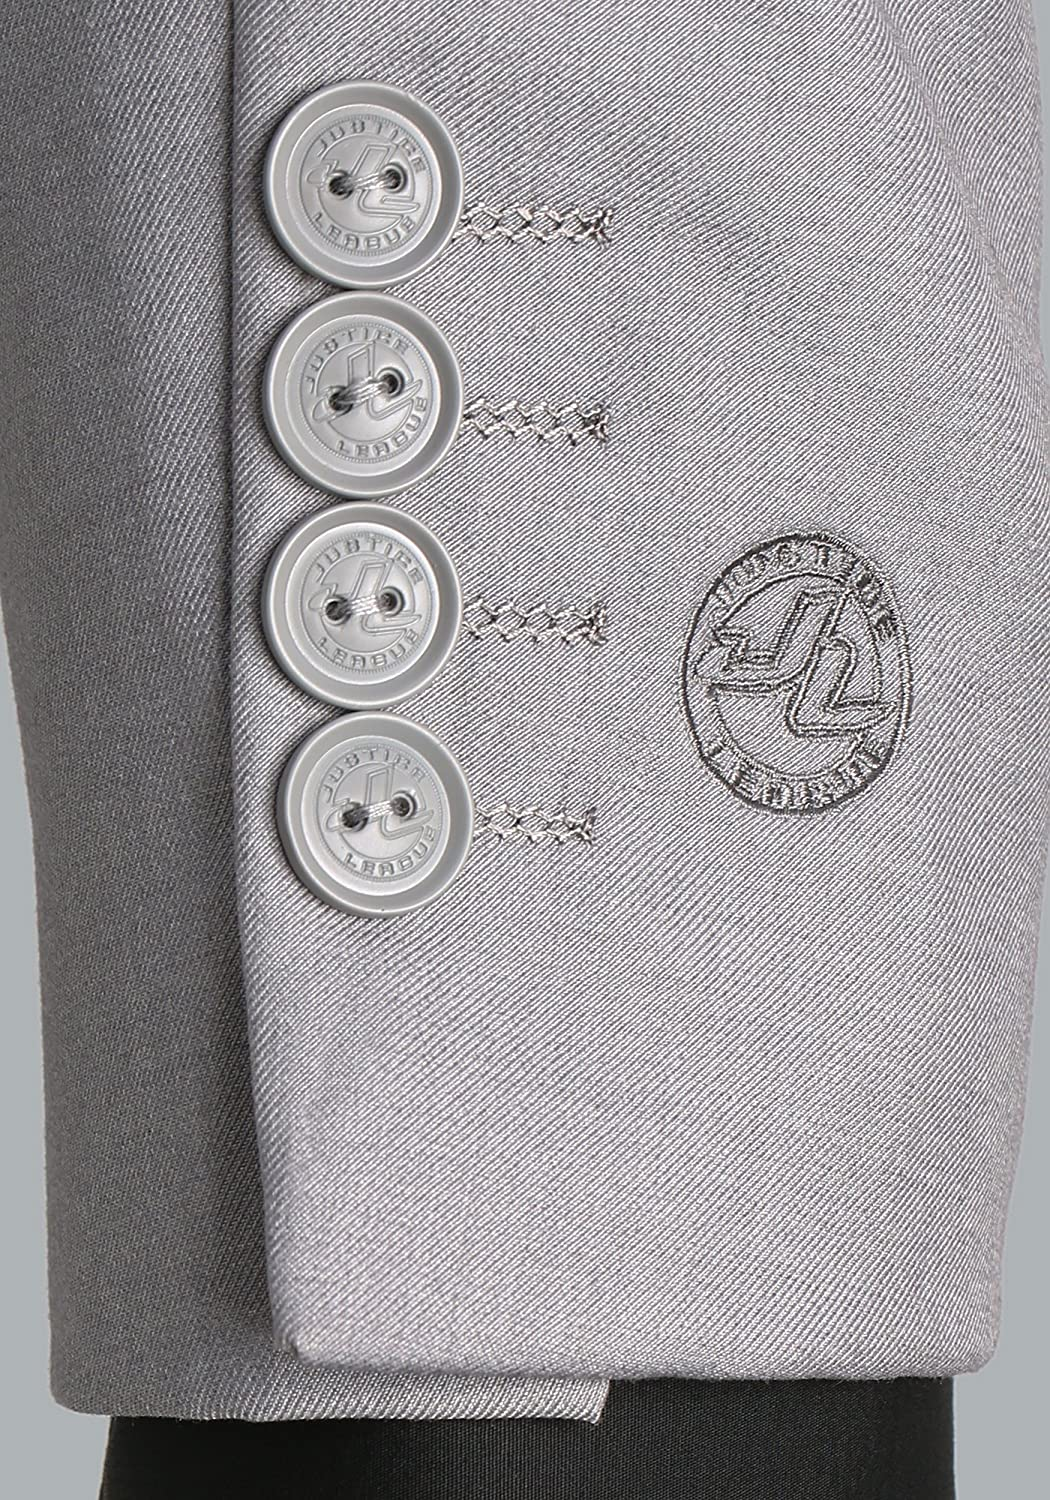 FunComInc Justice League Slim Fit Adult Suit Jacket with Justice League Logo Print Inner Lining